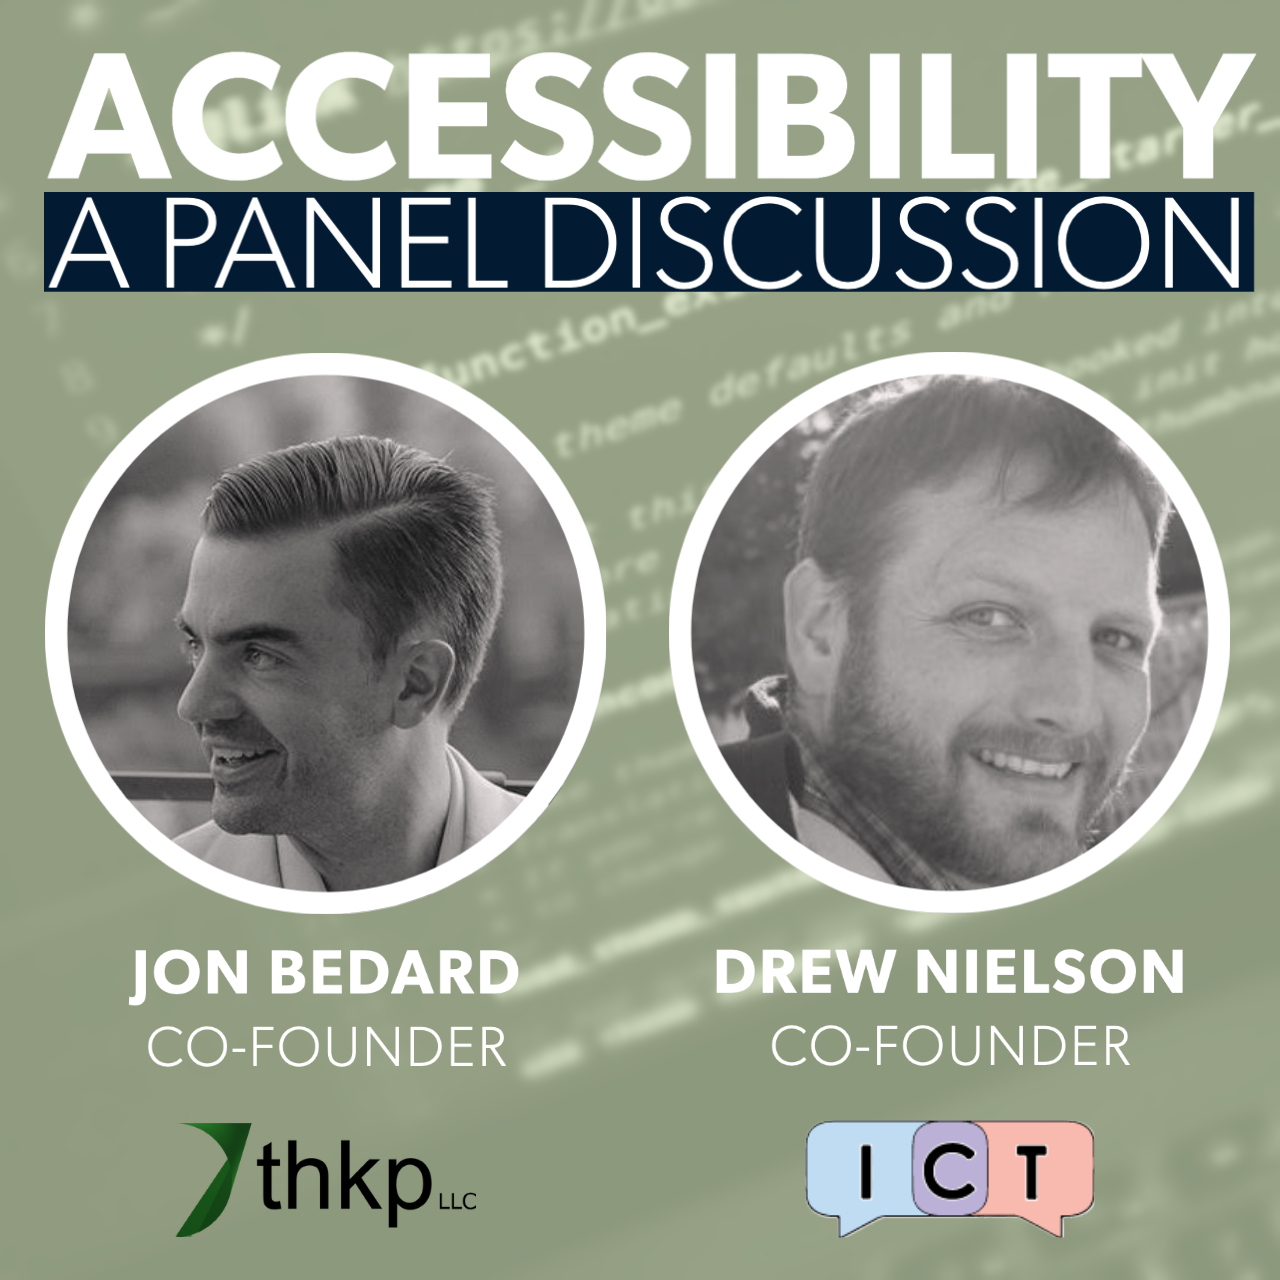 Join our Accessibility Panel Discussion with Jon Bedard and Drew Nielson